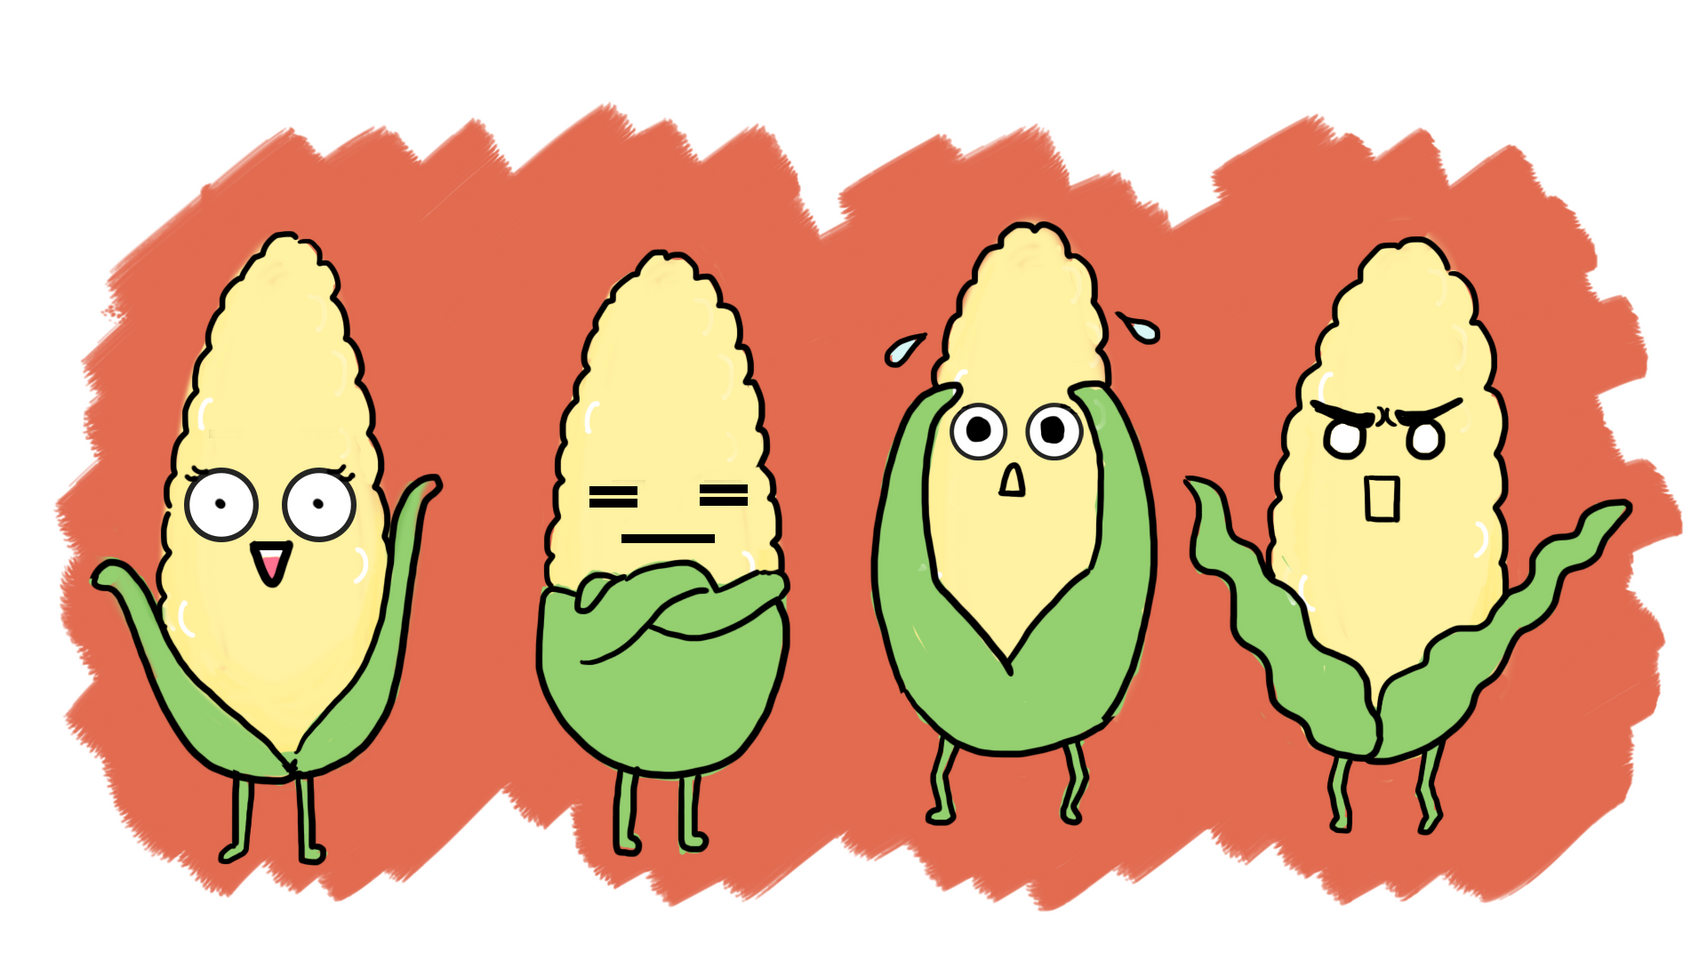 Corn Cob for 'The Married Life of Corn Cob and Sweet Potato' Short